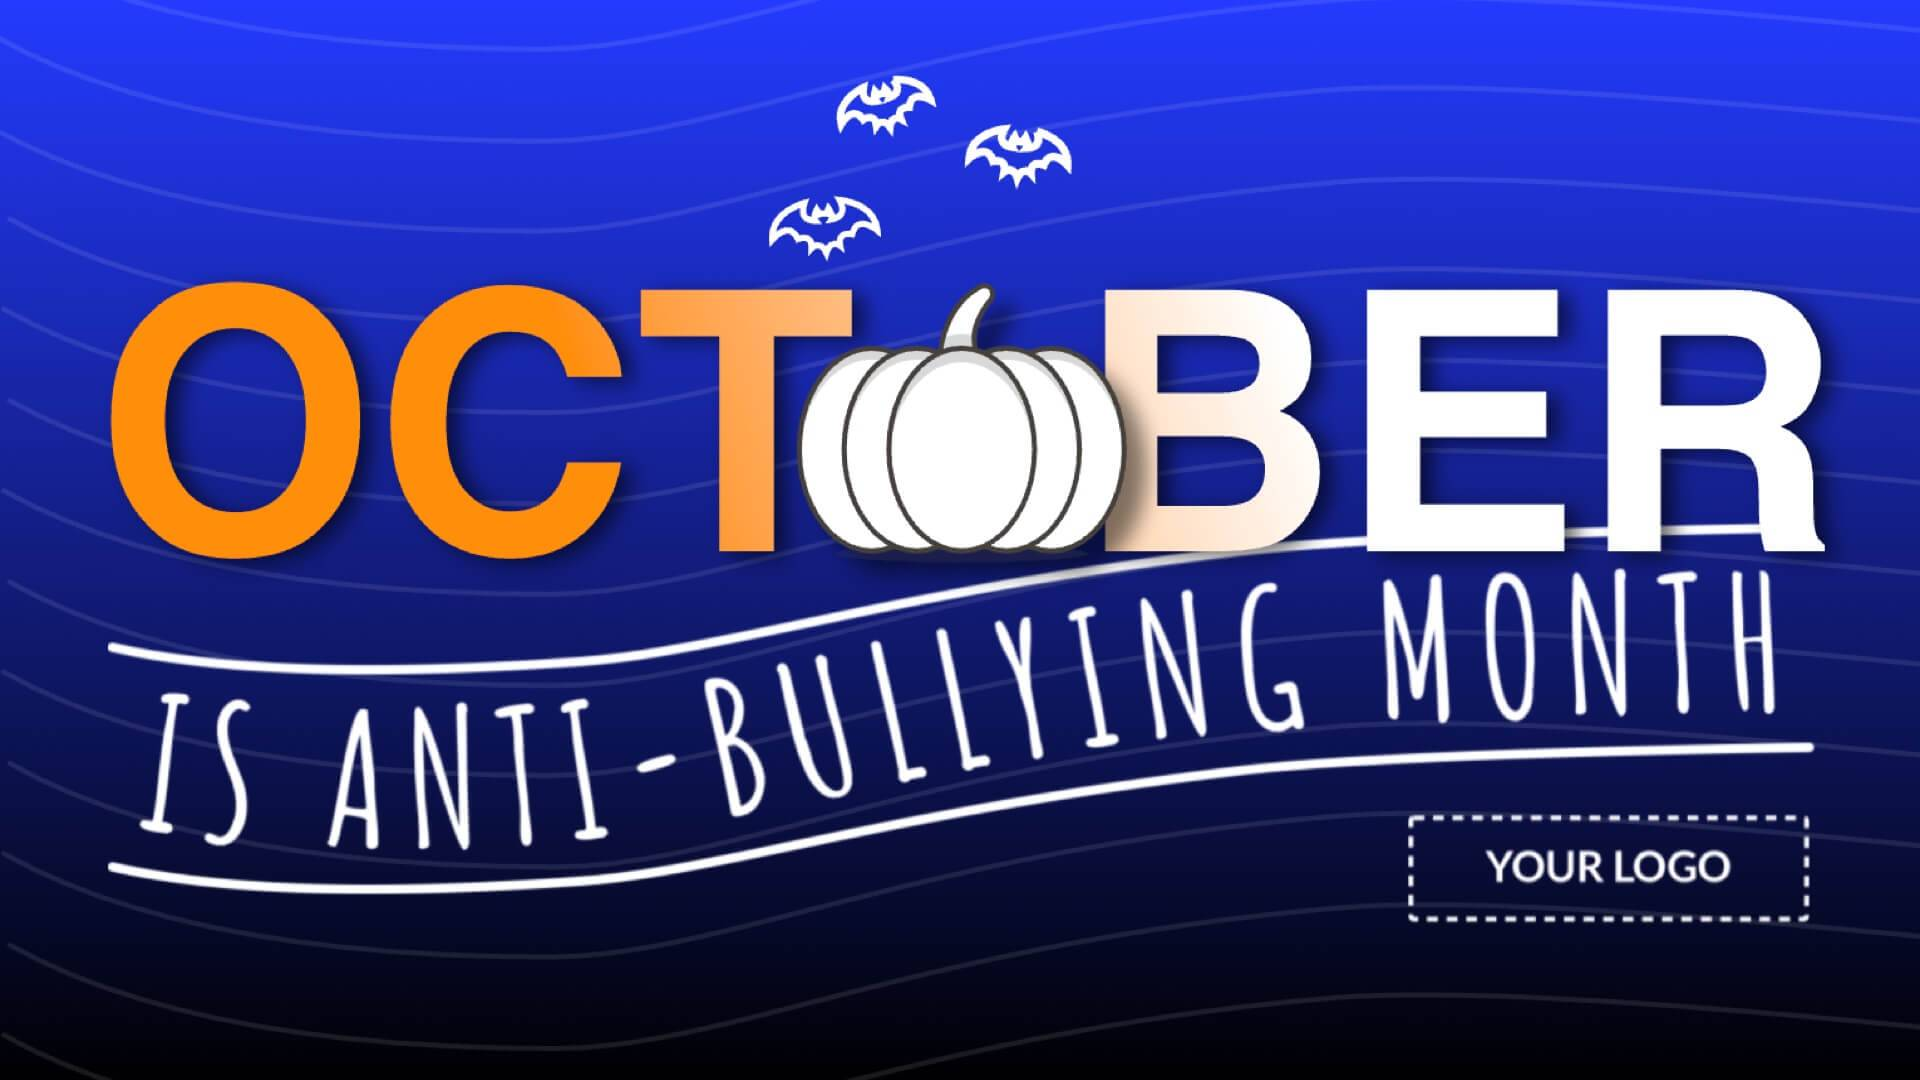 Anti-Bullying Month Digital Signage Template